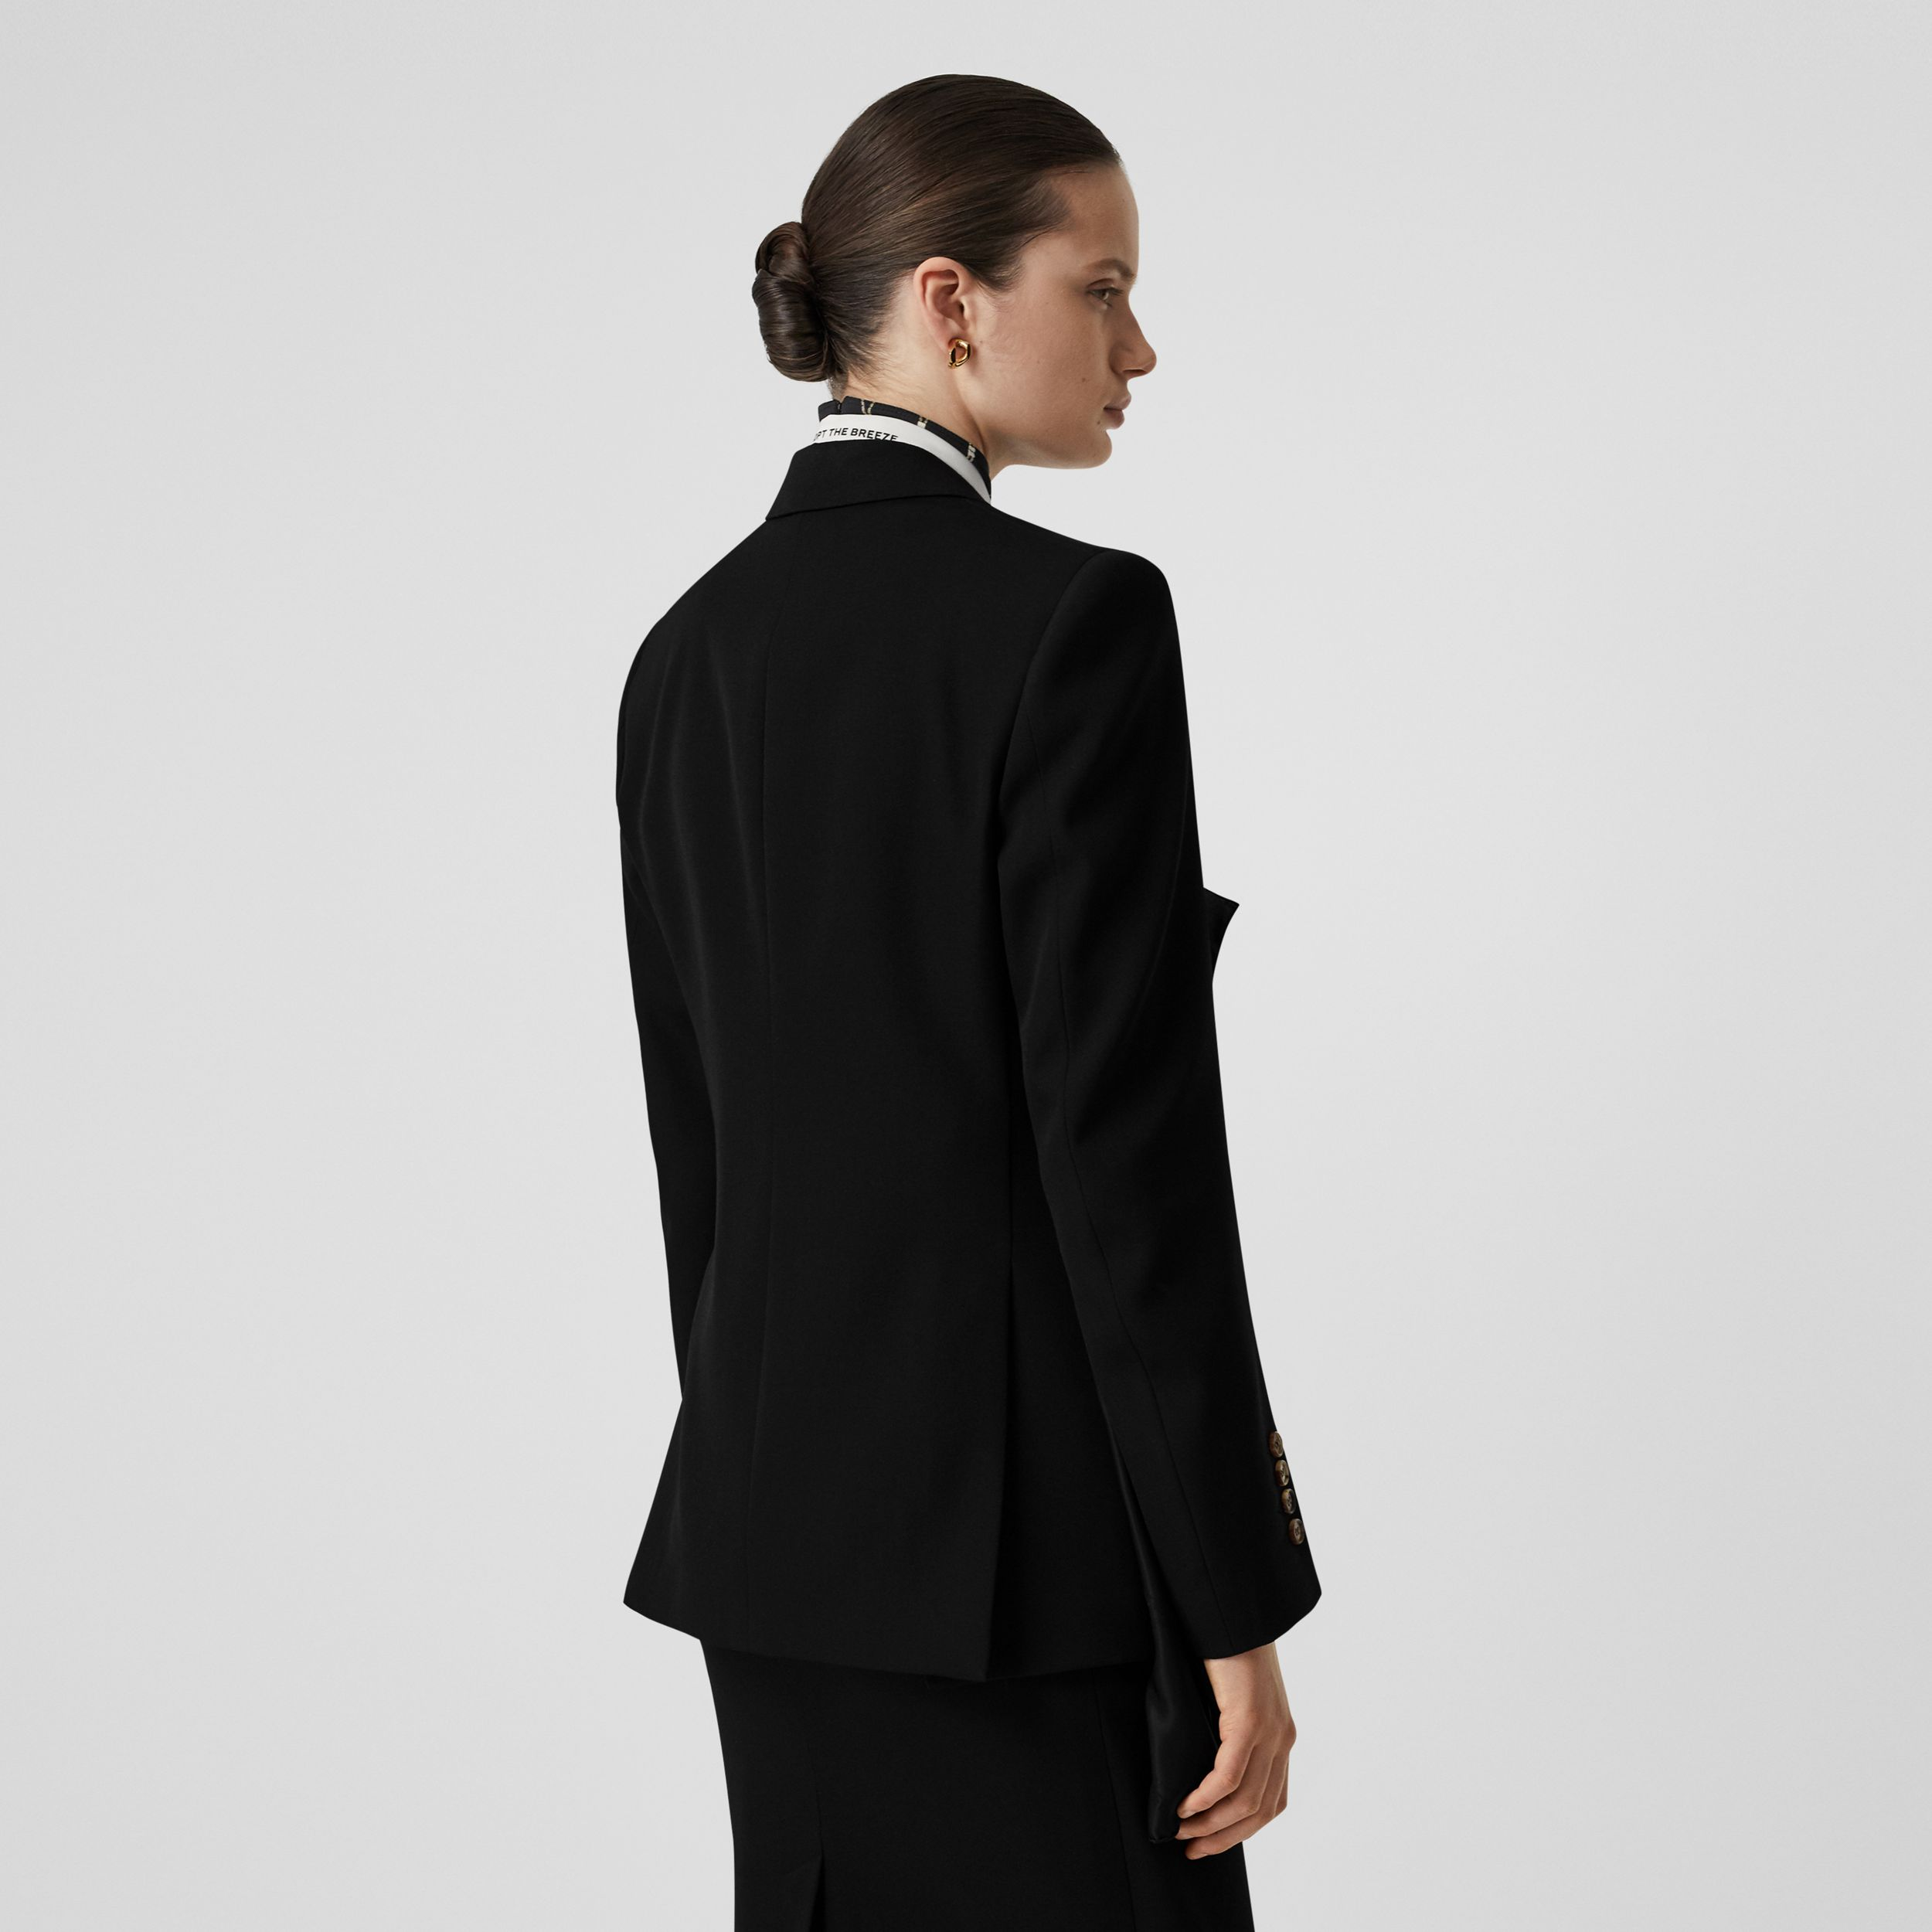 Logo Panel Detail Wool Tailored Jacket in Black - Women | Burberry - 3